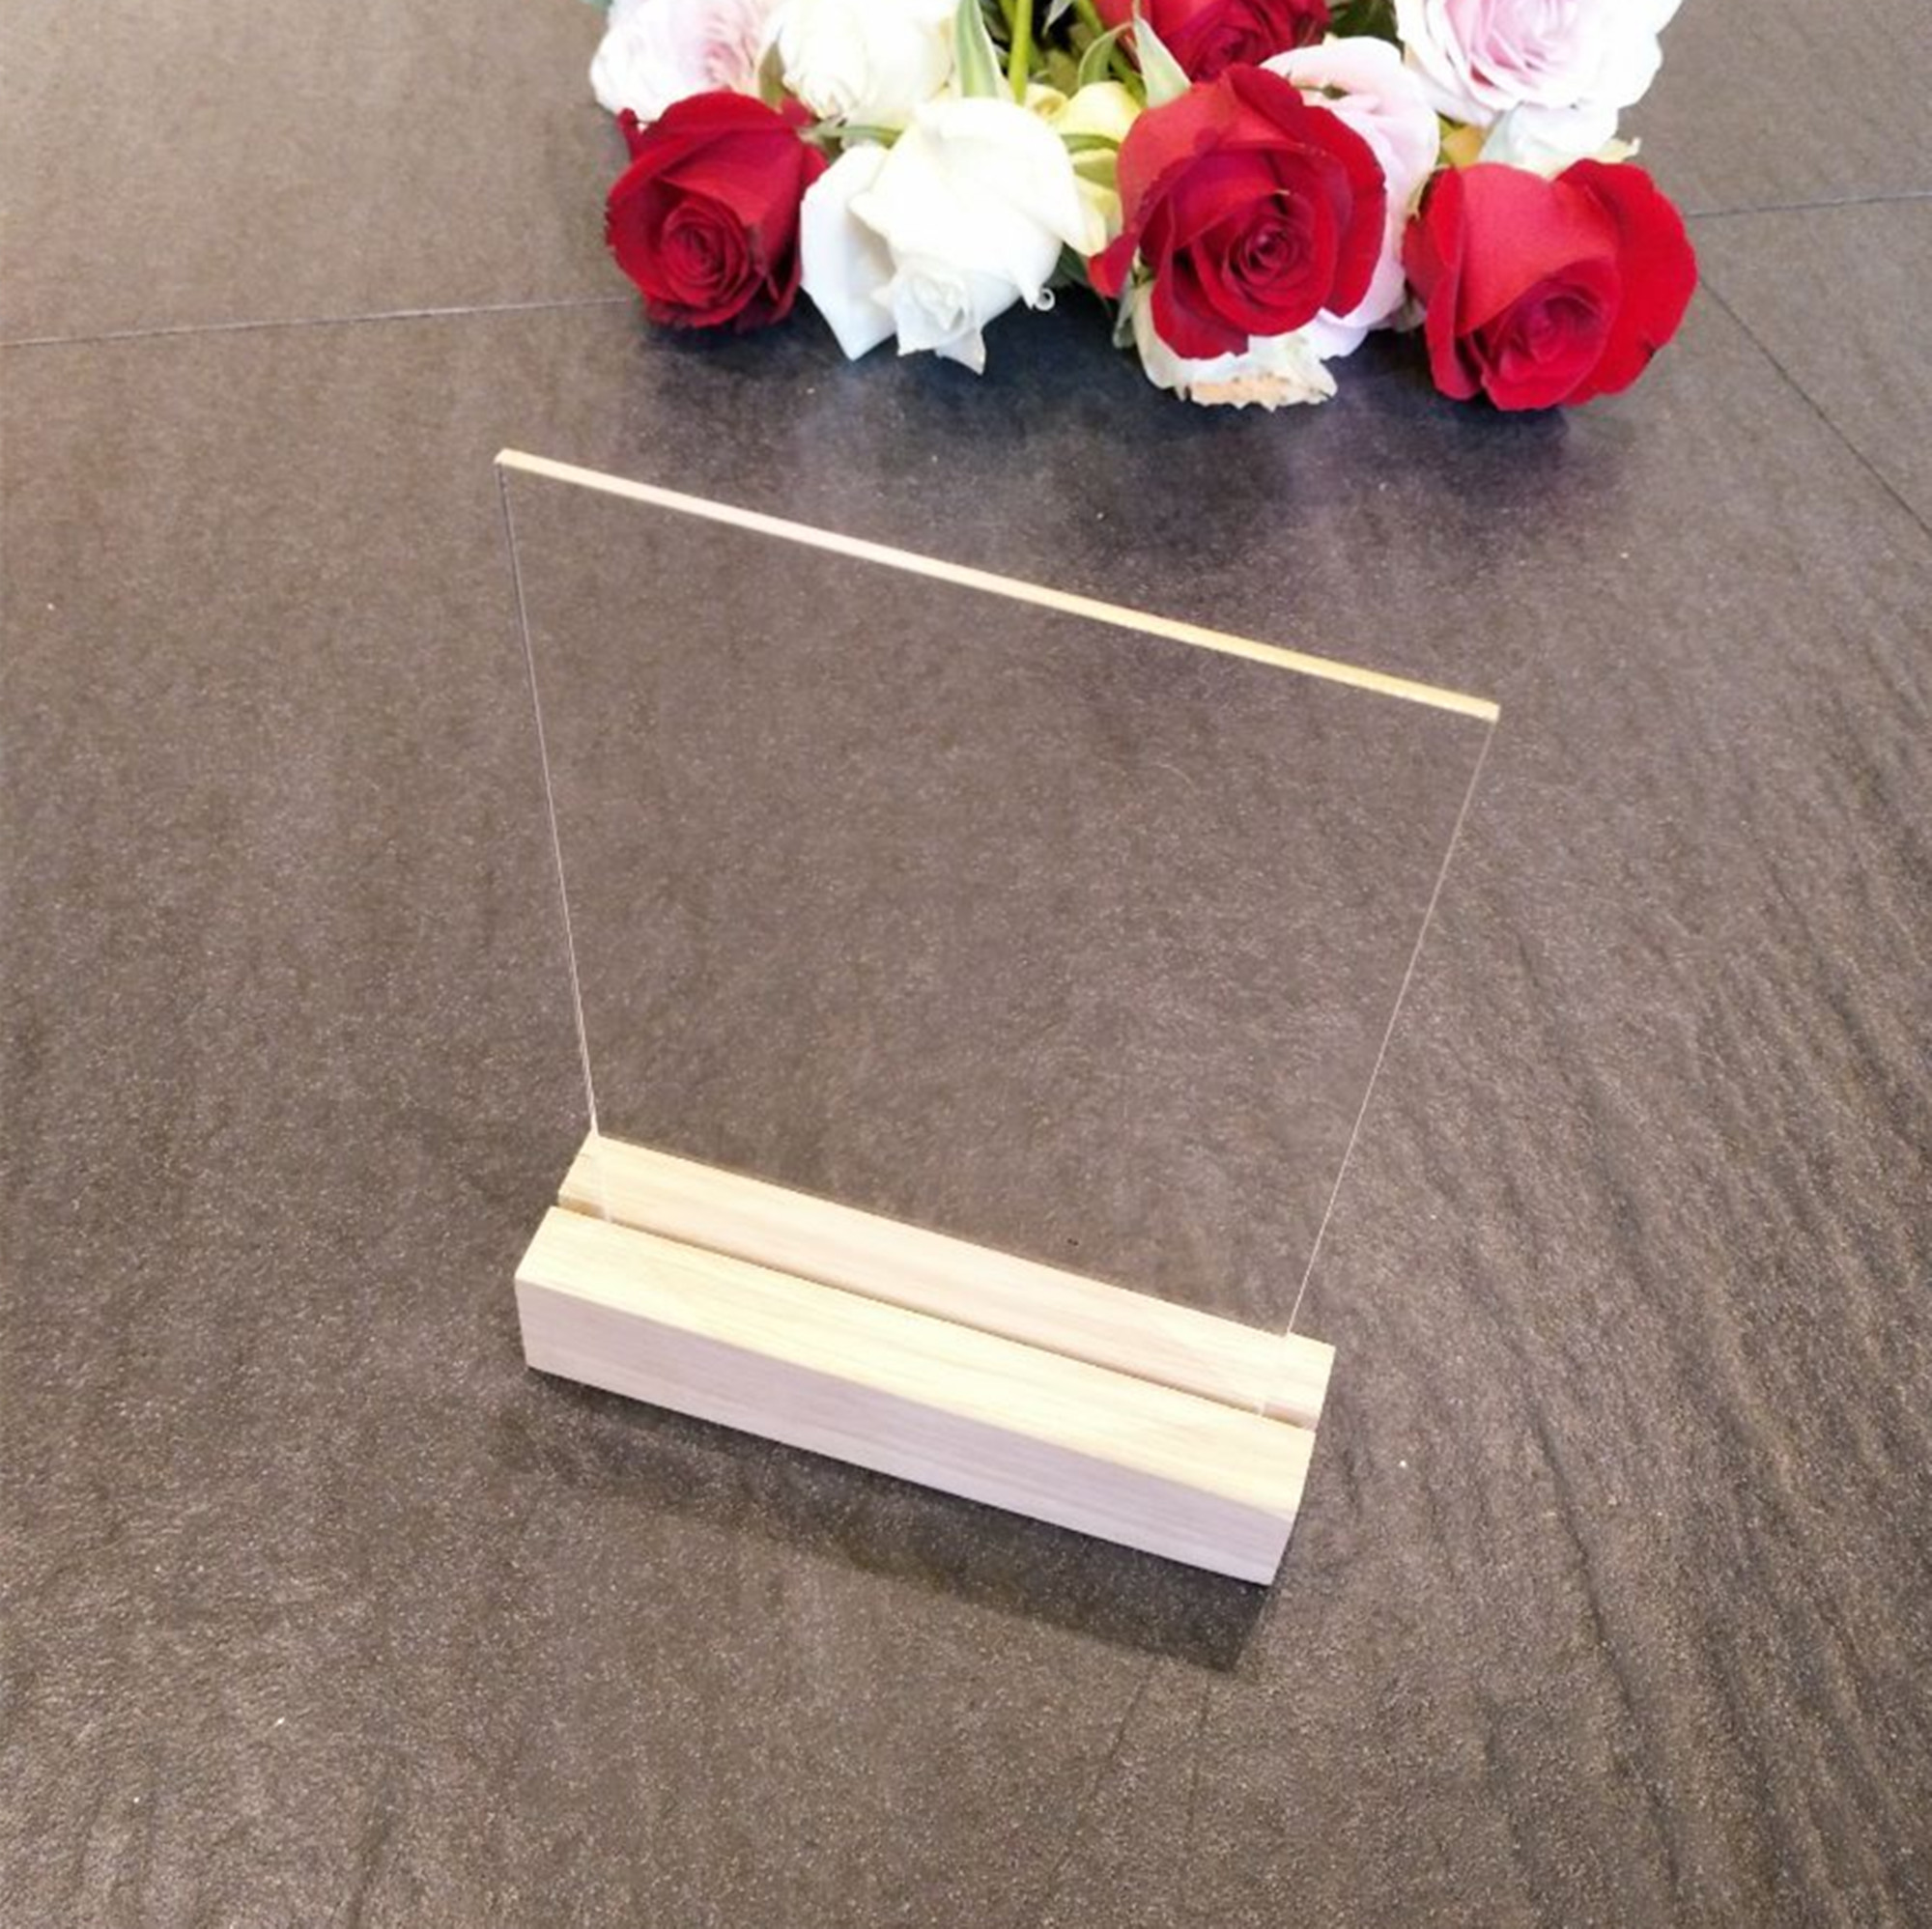 5SETS of Blank Acrylic Sign with Wood Stands,Acrylic Table Number with Wood Holder,Oak Wood Place Card Holder for Sign,Display a